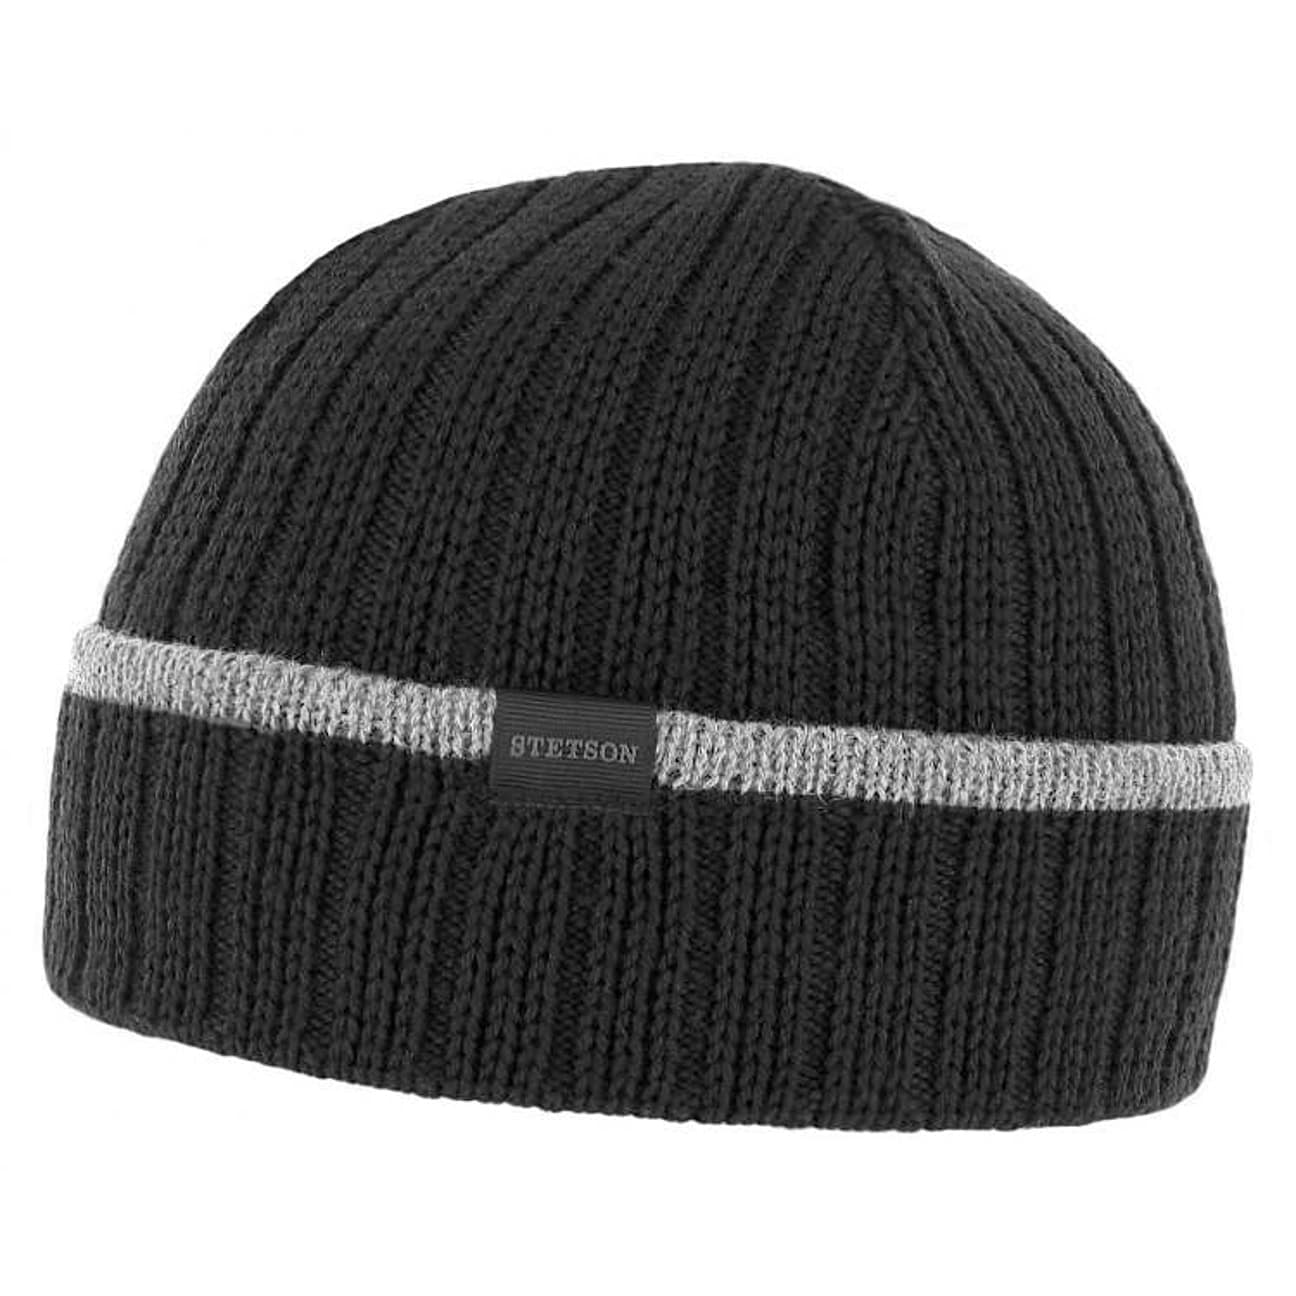 ... Seminole Merino Wool Hat by Stetson - anthracite 1 ... a111a396c589